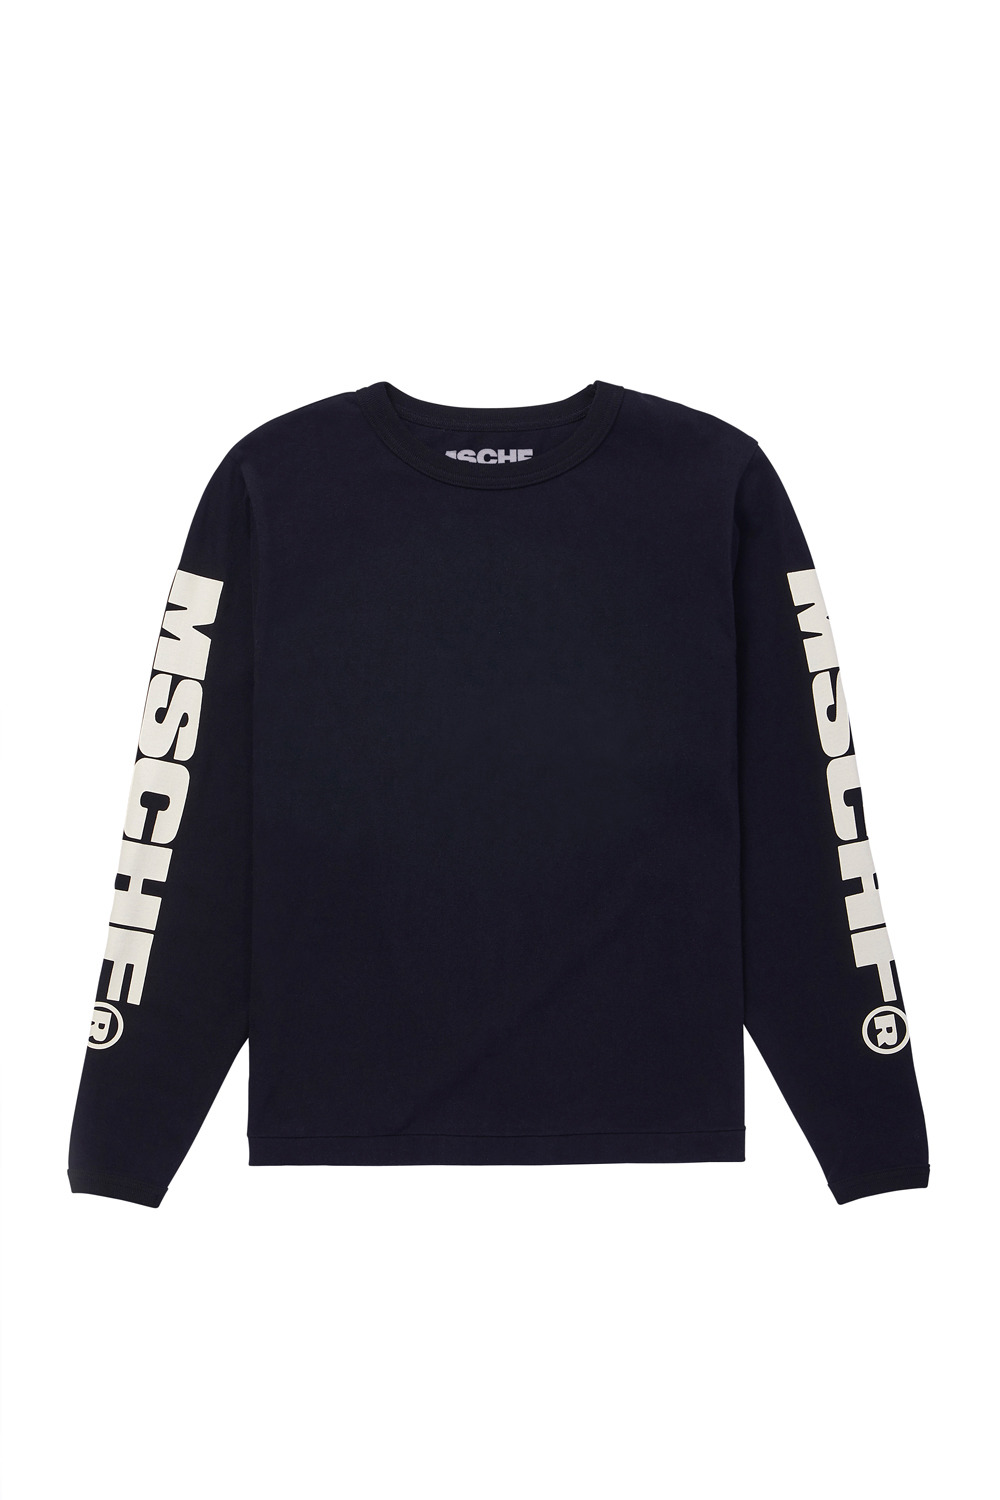 MSCHF LONG SLEEVE_black